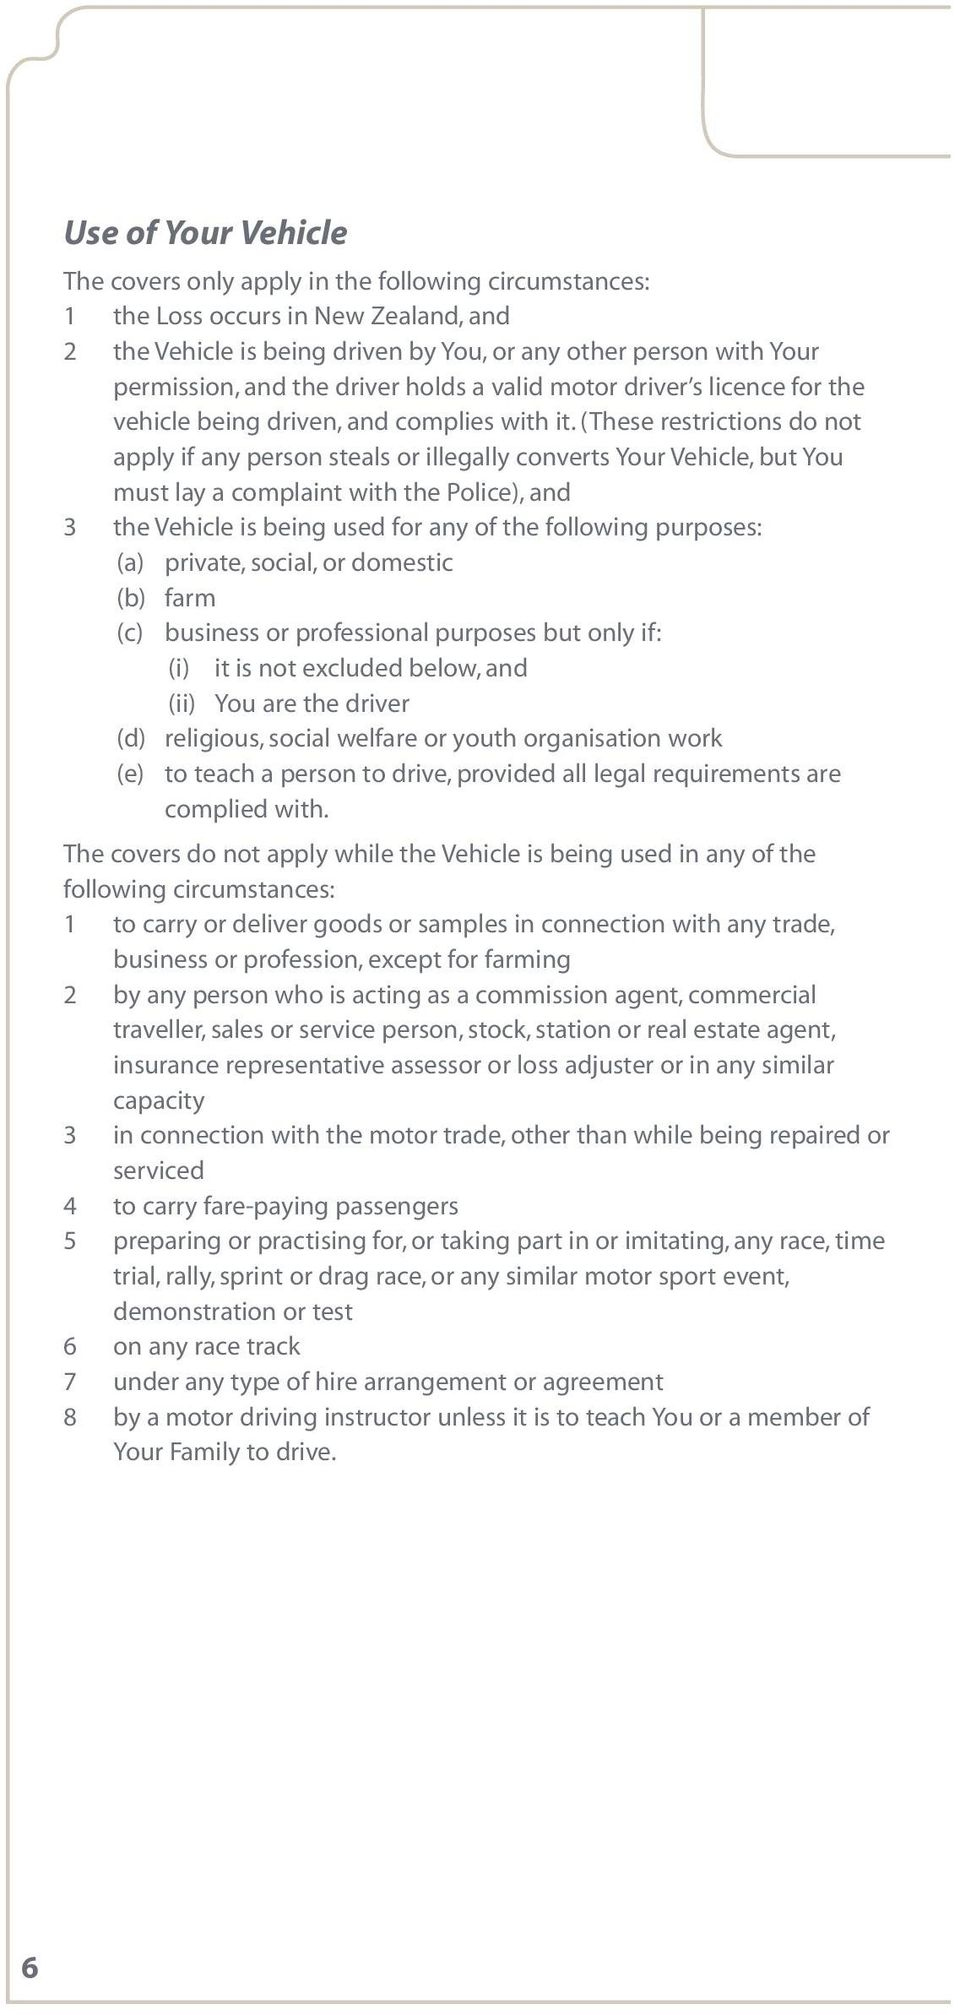 (These restrictions do not apply if any person steals or illegally converts Your Vehicle, but You must lay a complaint with the Police), and 3 the Vehicle is being used for any of the following